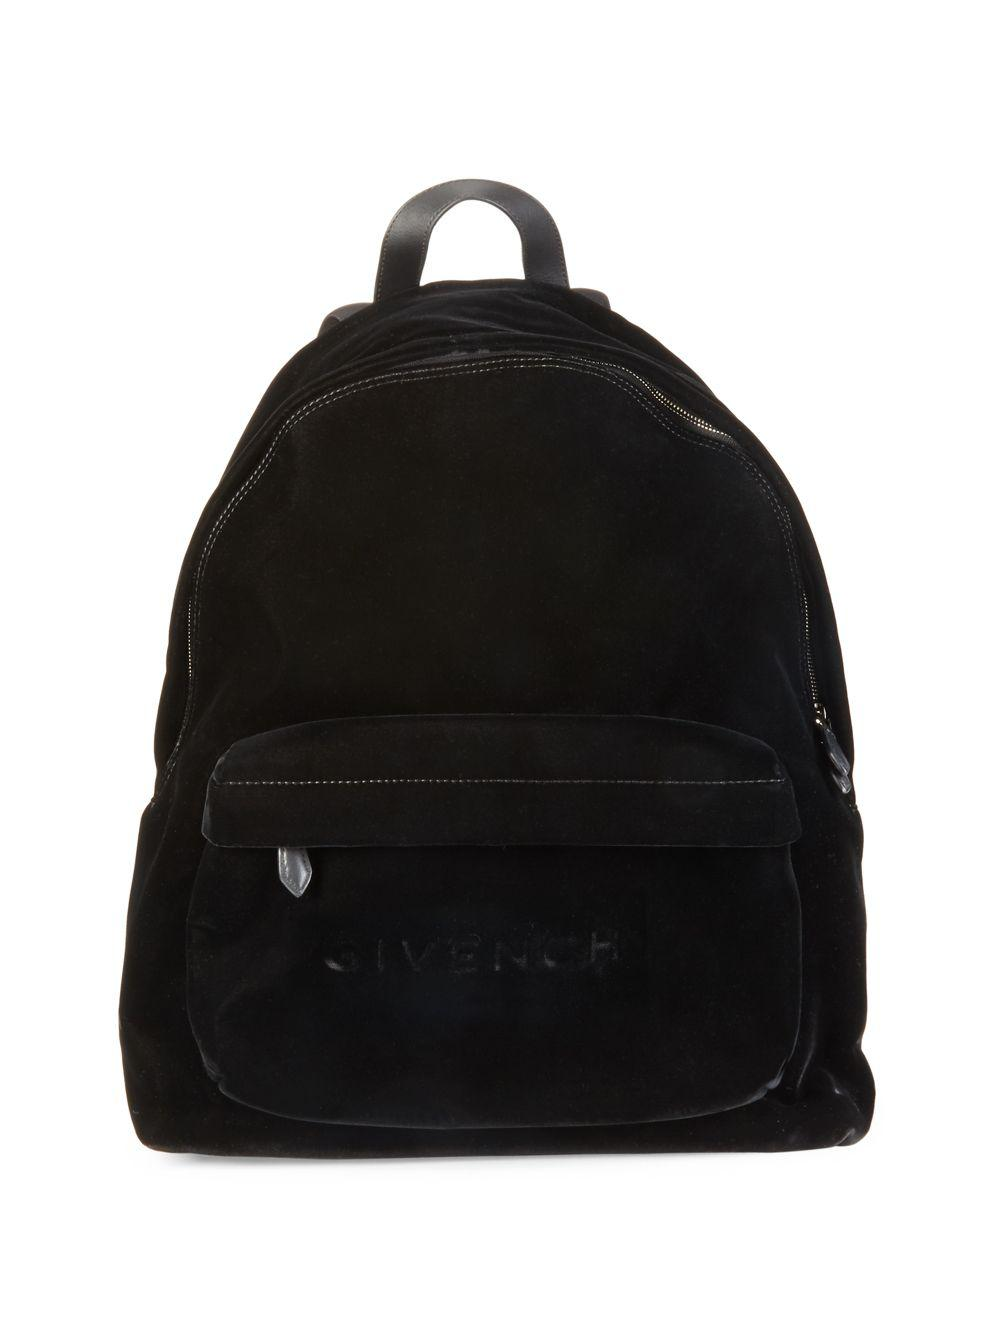 6f1615a1468 Givenchy Solid Backpack in Black for Men - Lyst